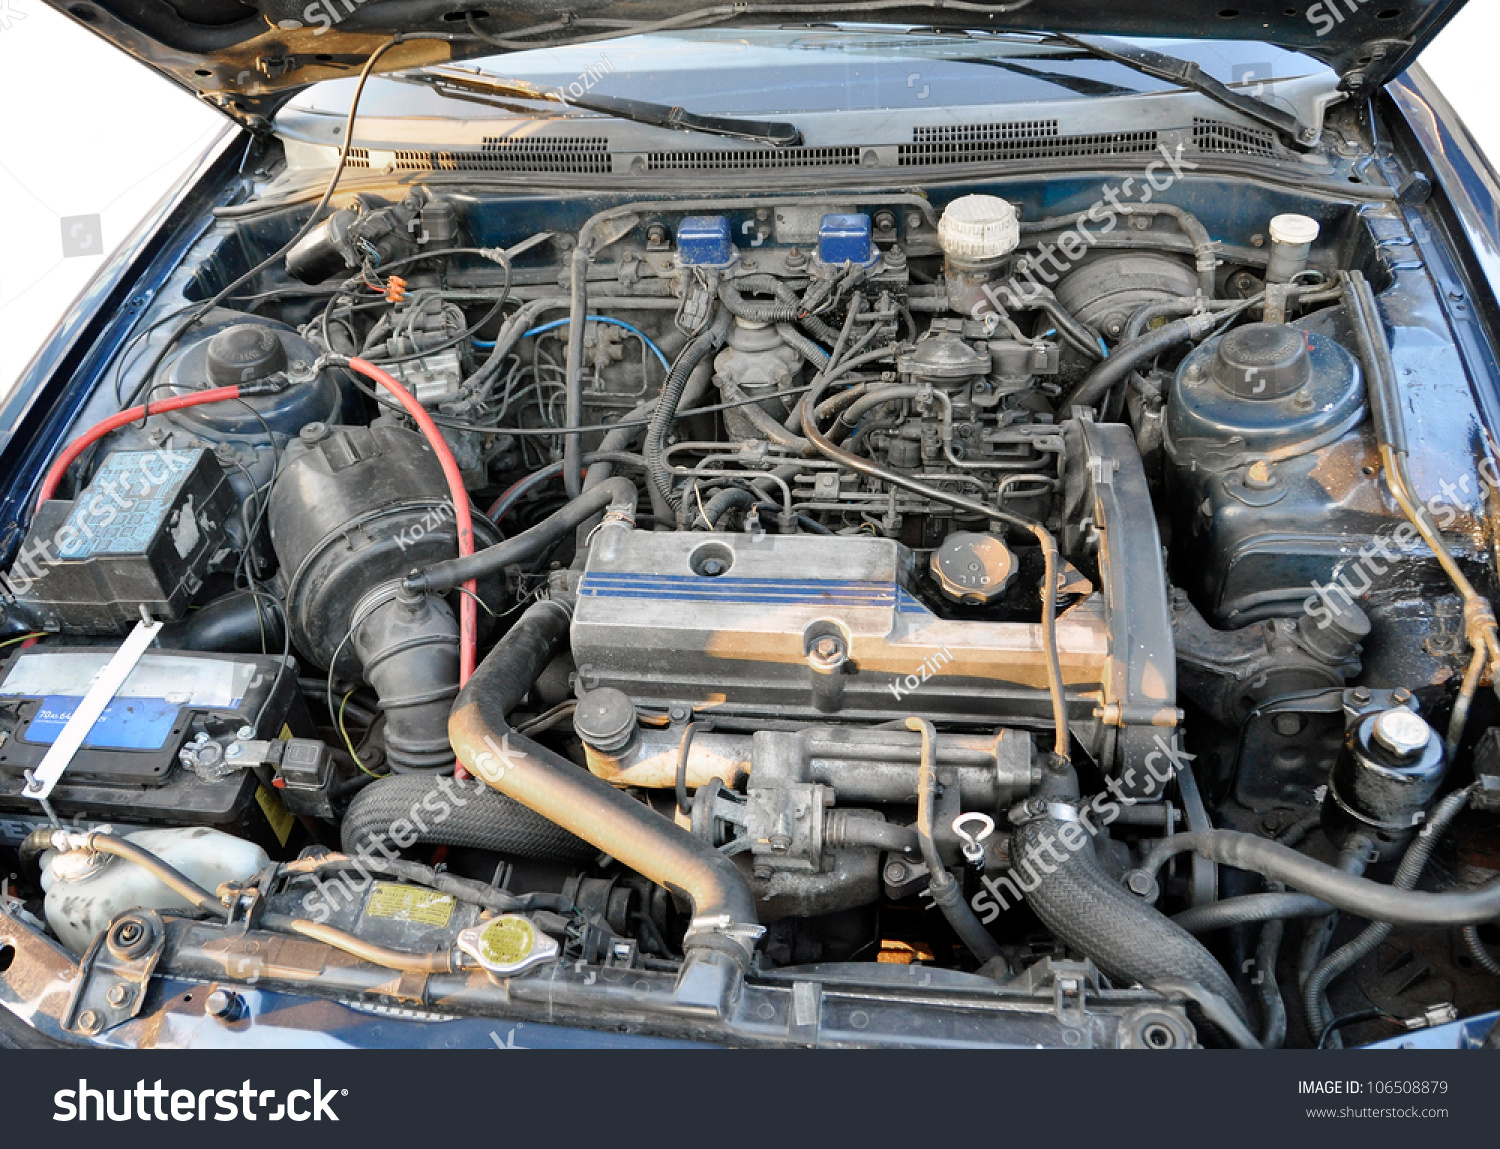 Automotive Engine Compartment Old Car Stock Photo 106508879 ...